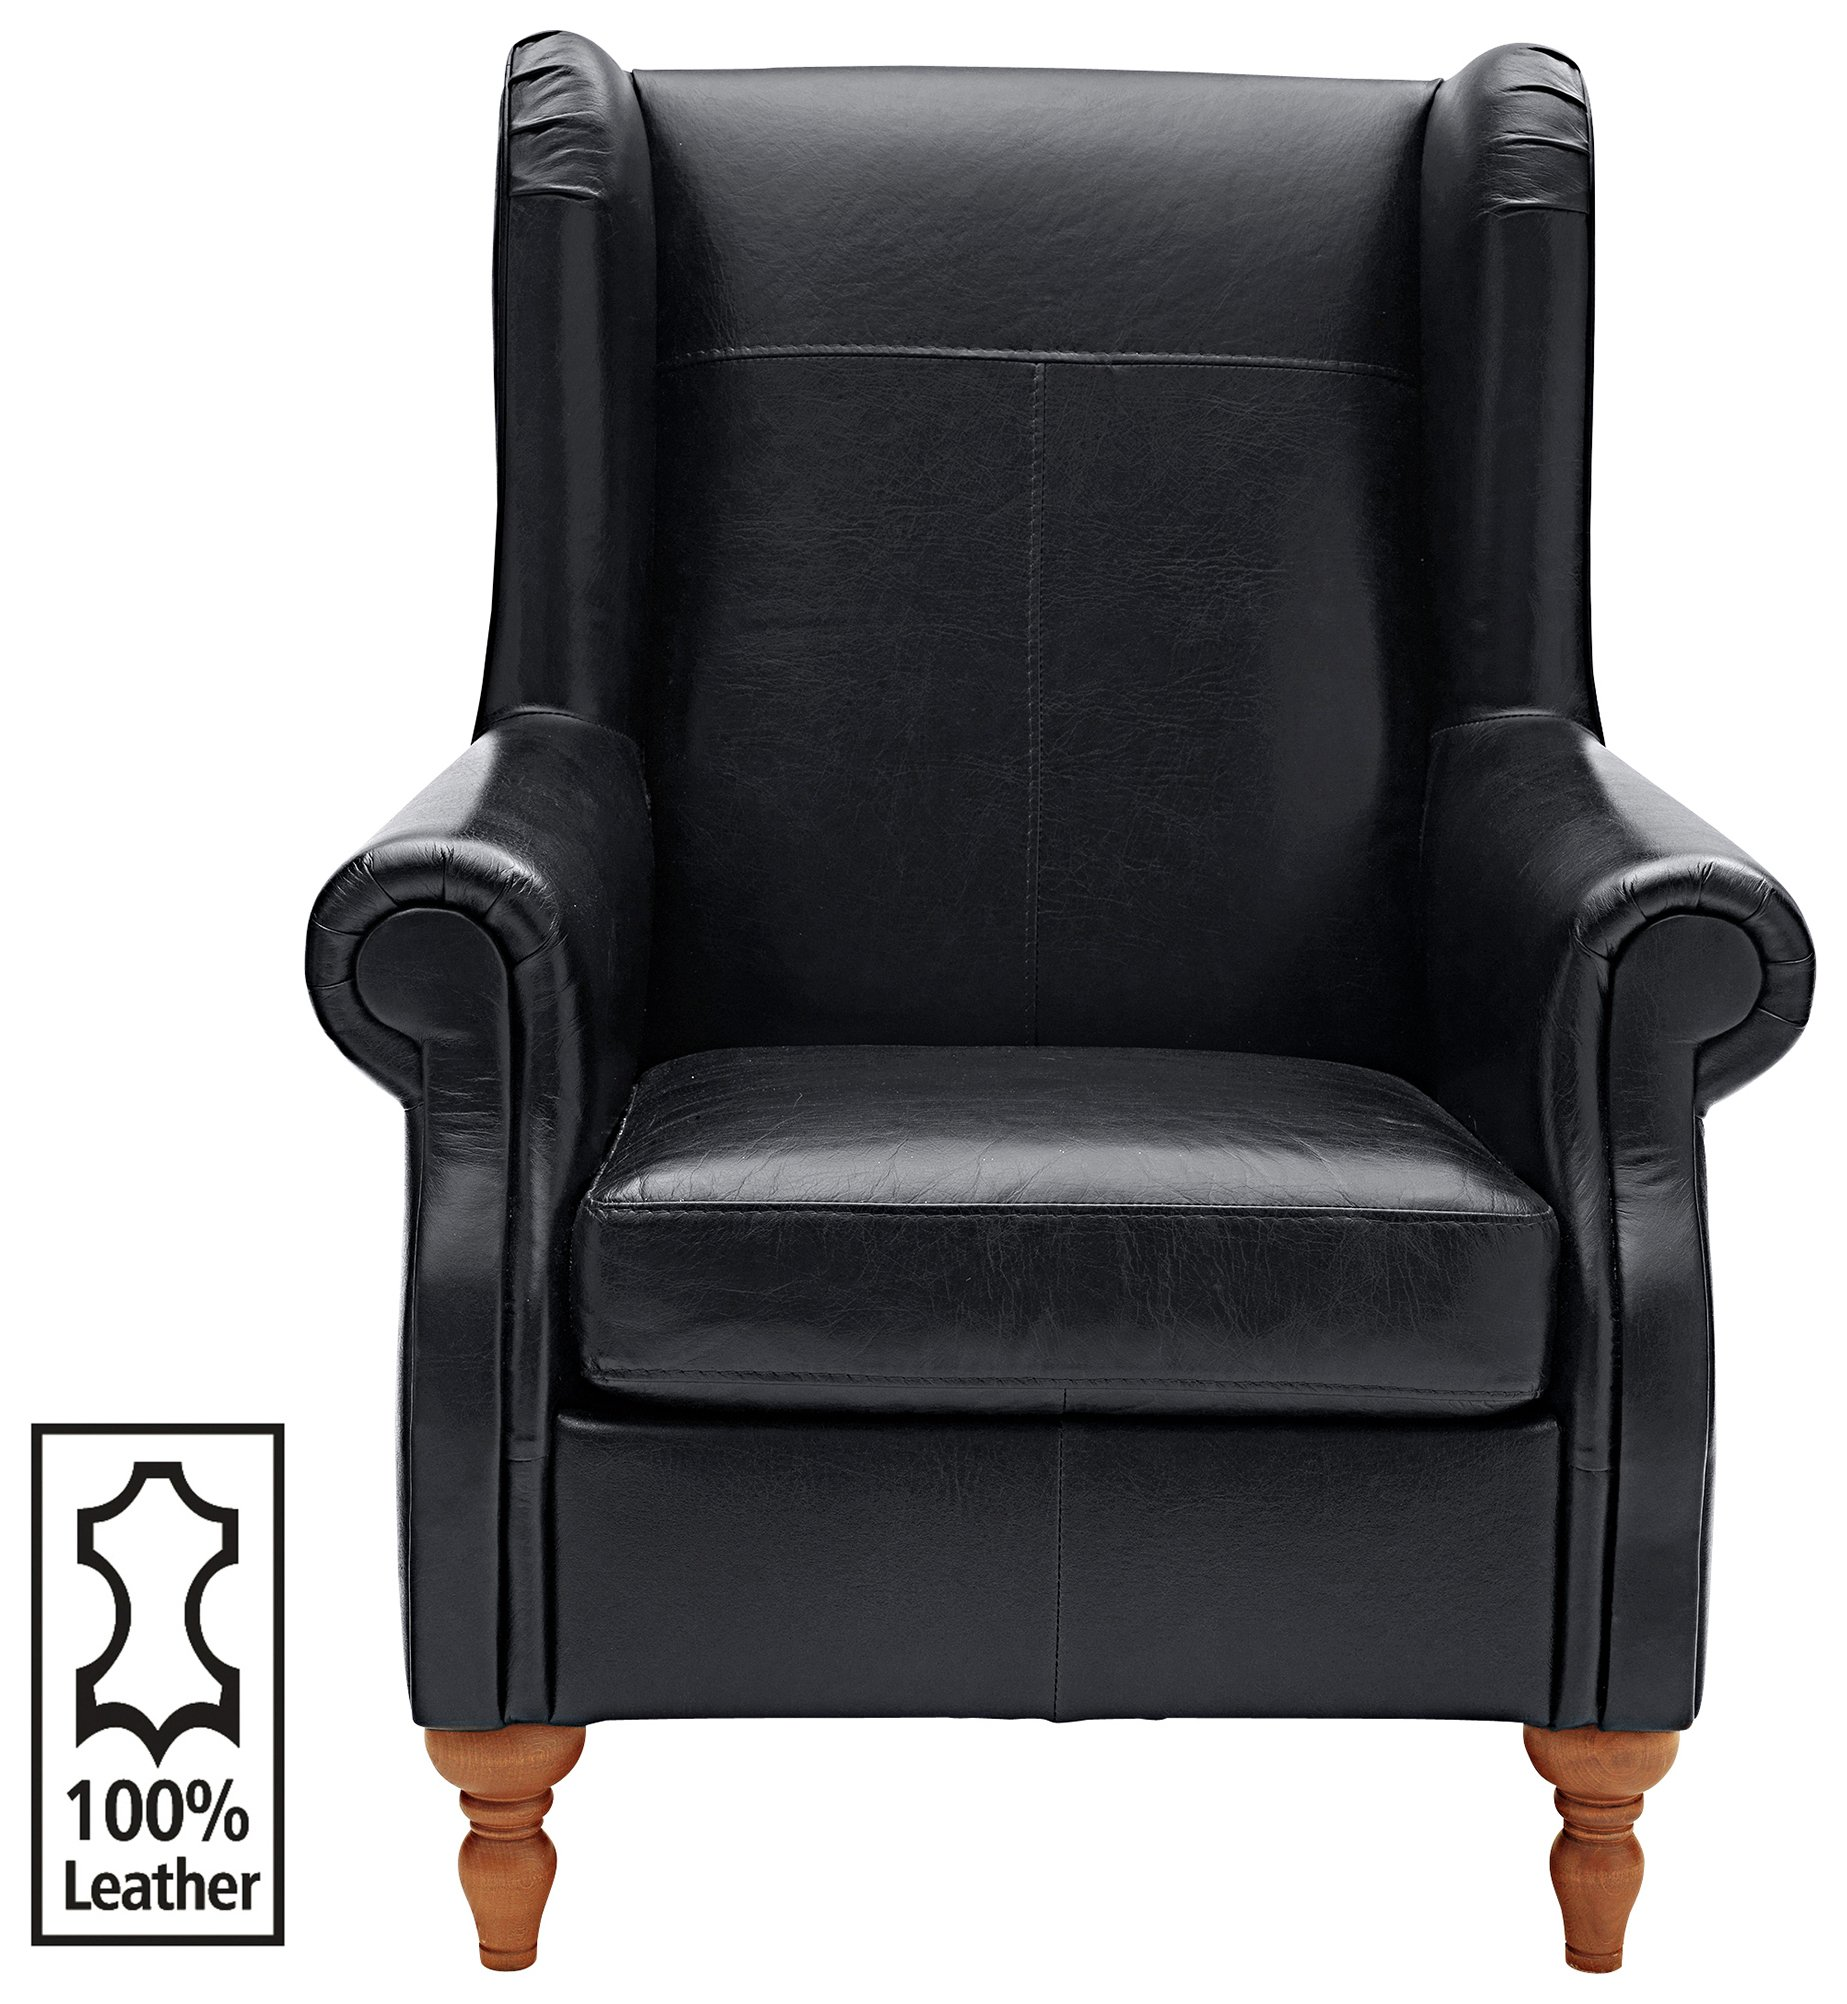 Argos Home Argyll Leather High Back Chair - Black